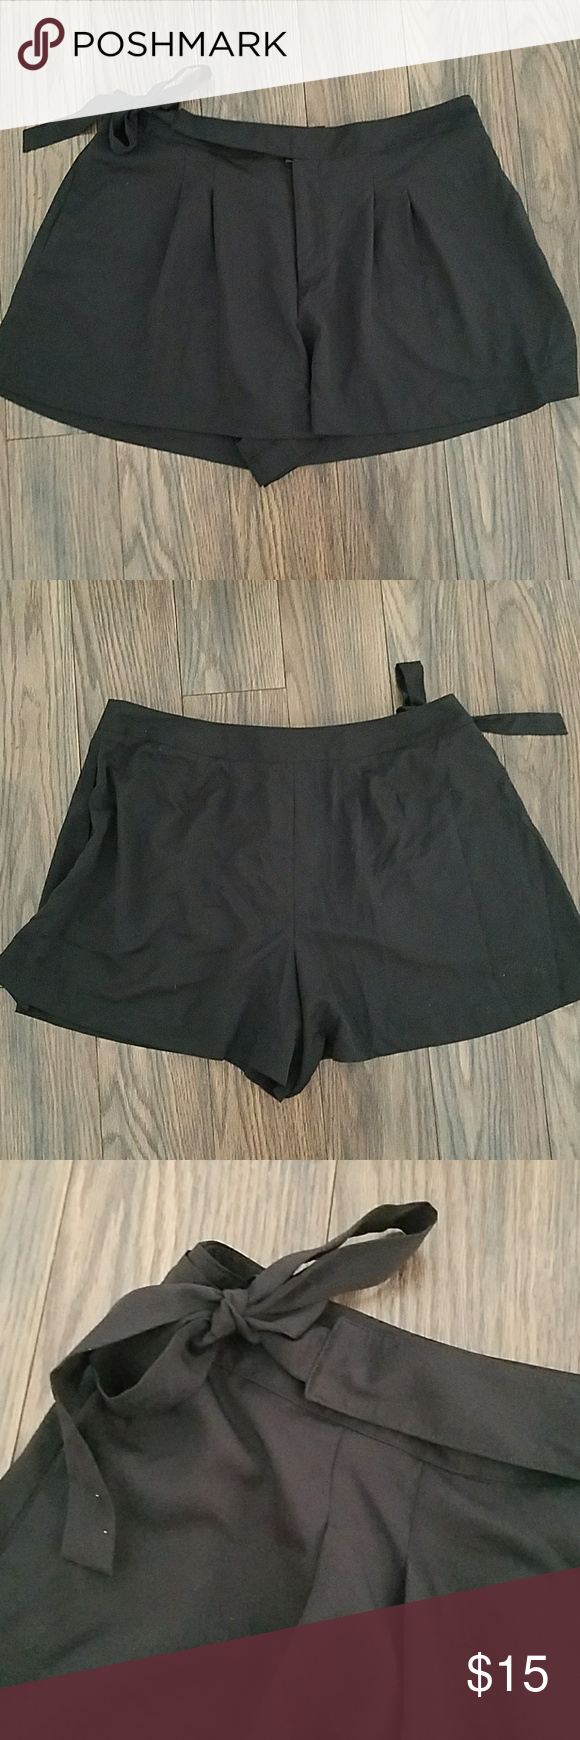 Super Cute Black Dress Shorts With Side Bow Cute Black Dress Black Short Dress Short Dresses [ 1740 x 580 Pixel ]